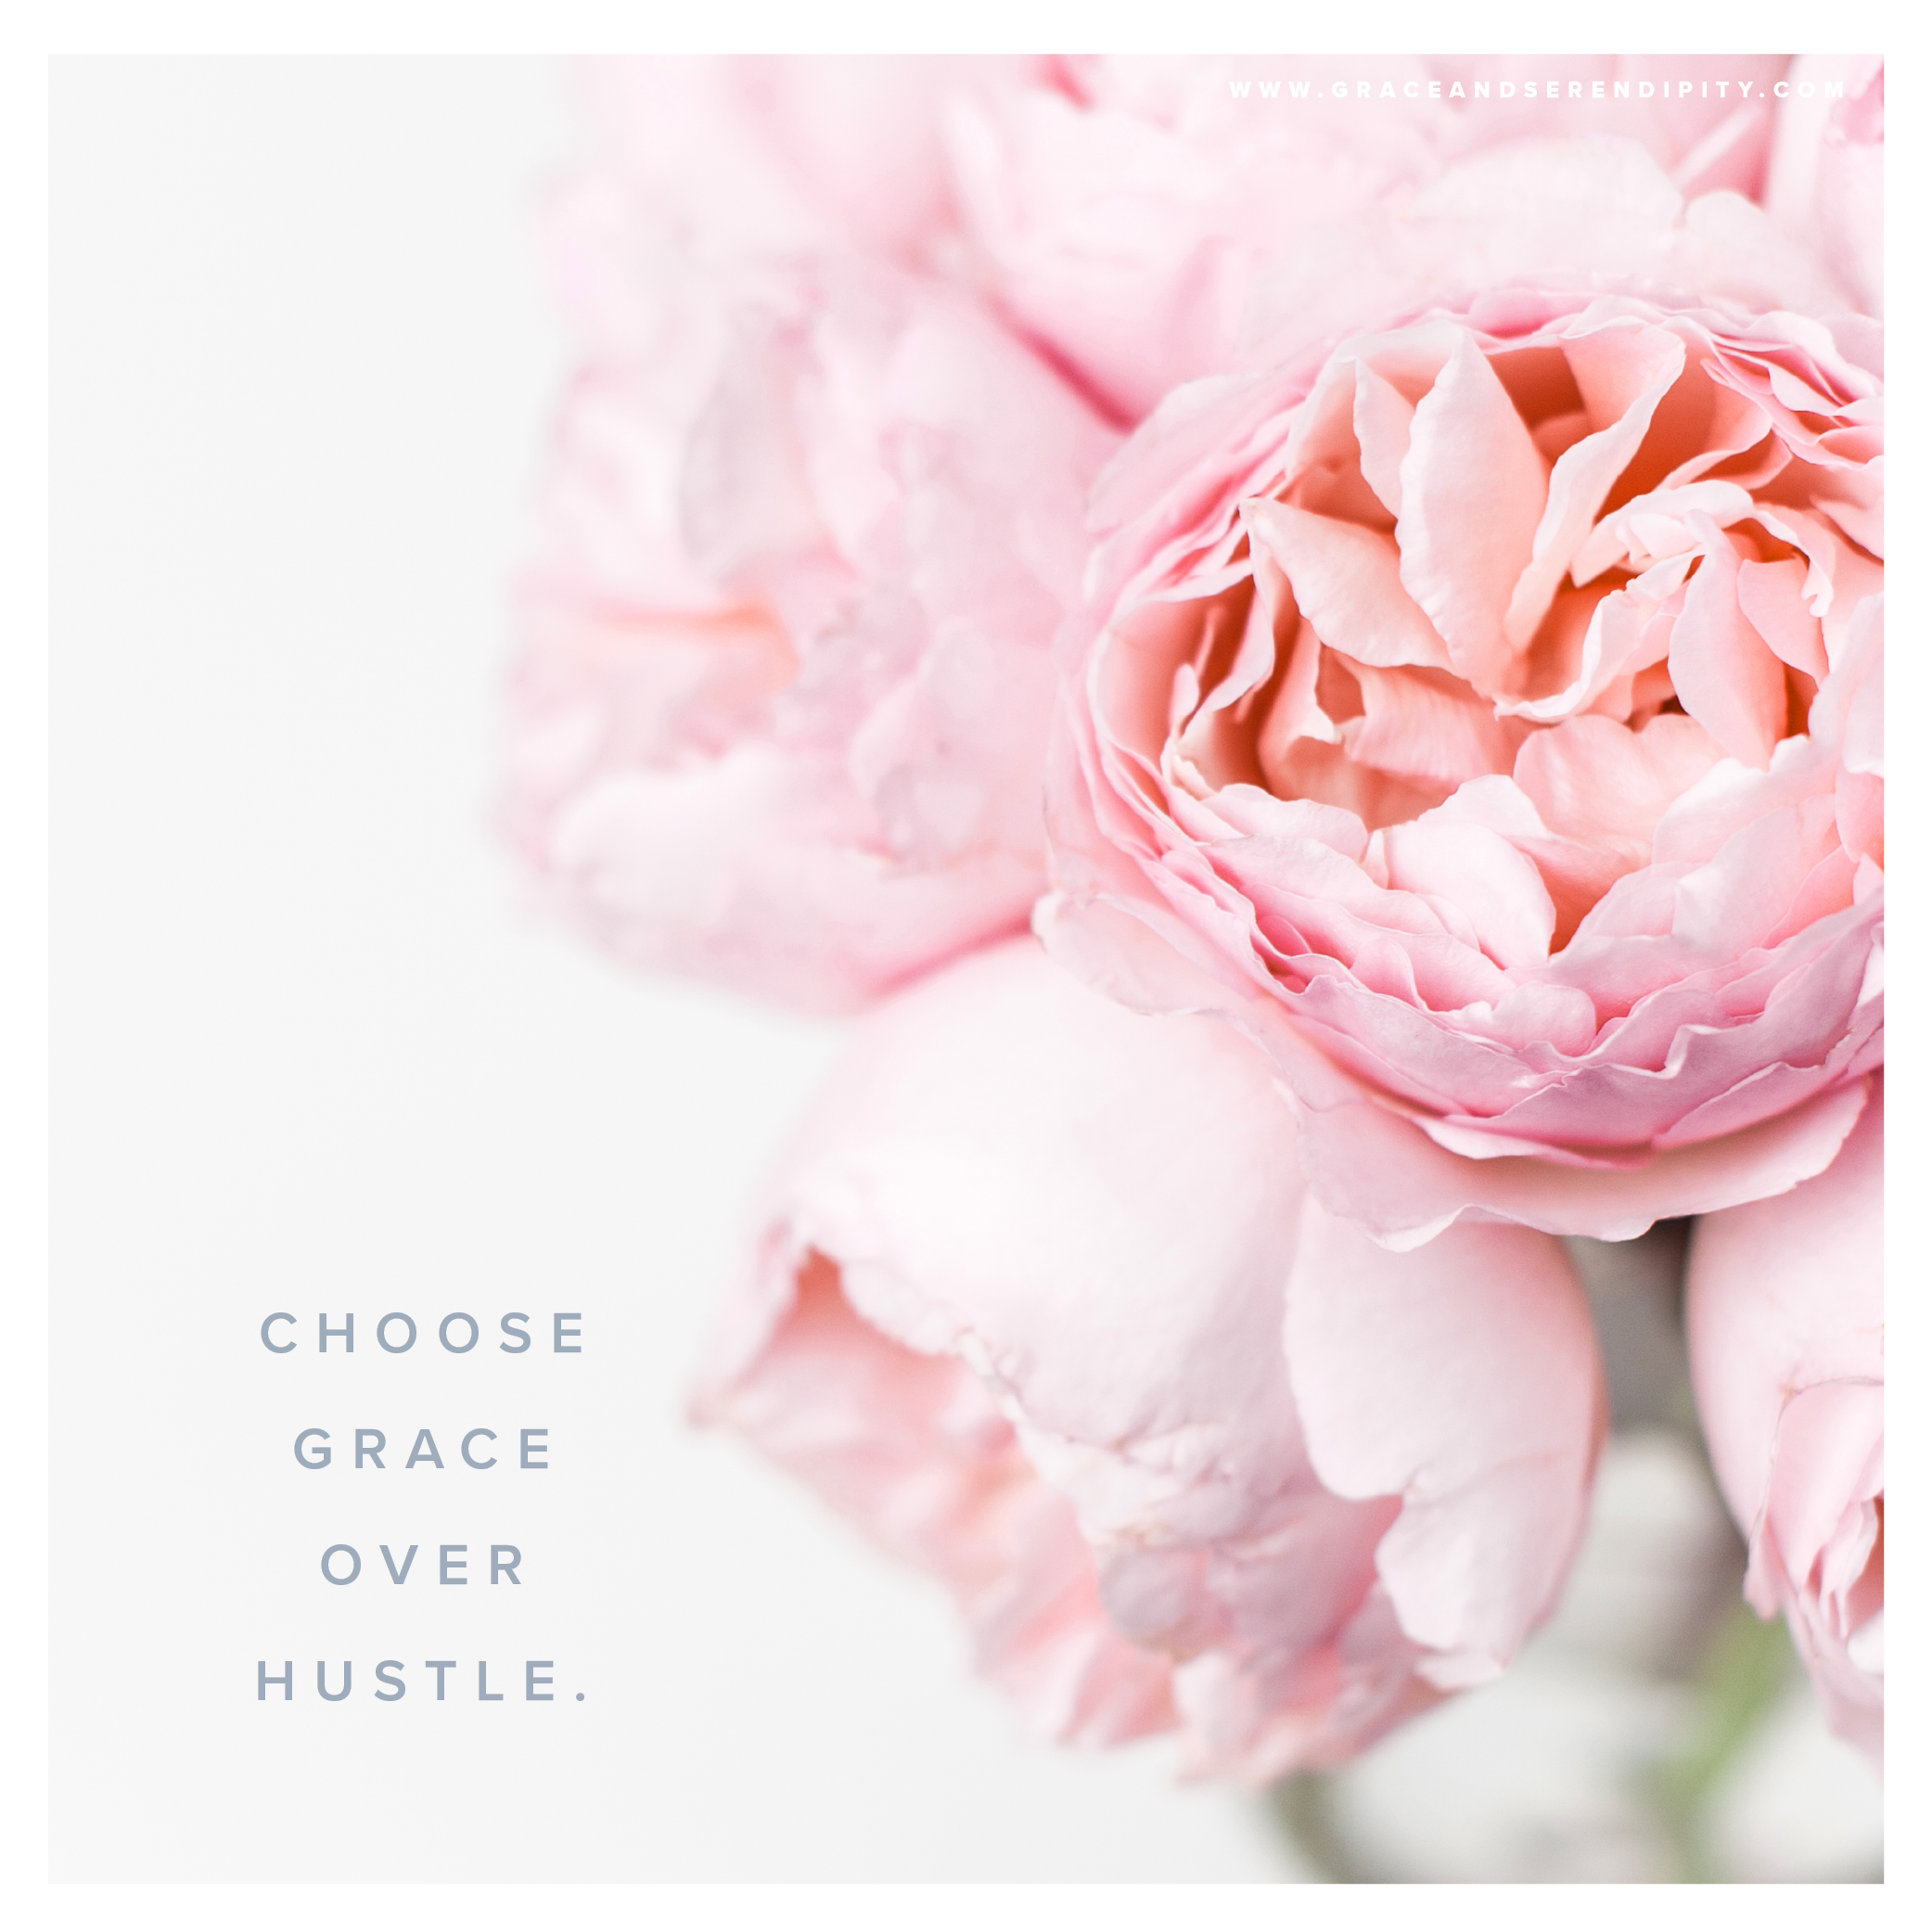 Choose Grace Over Hustle - encouragement from Grace and Serendipity